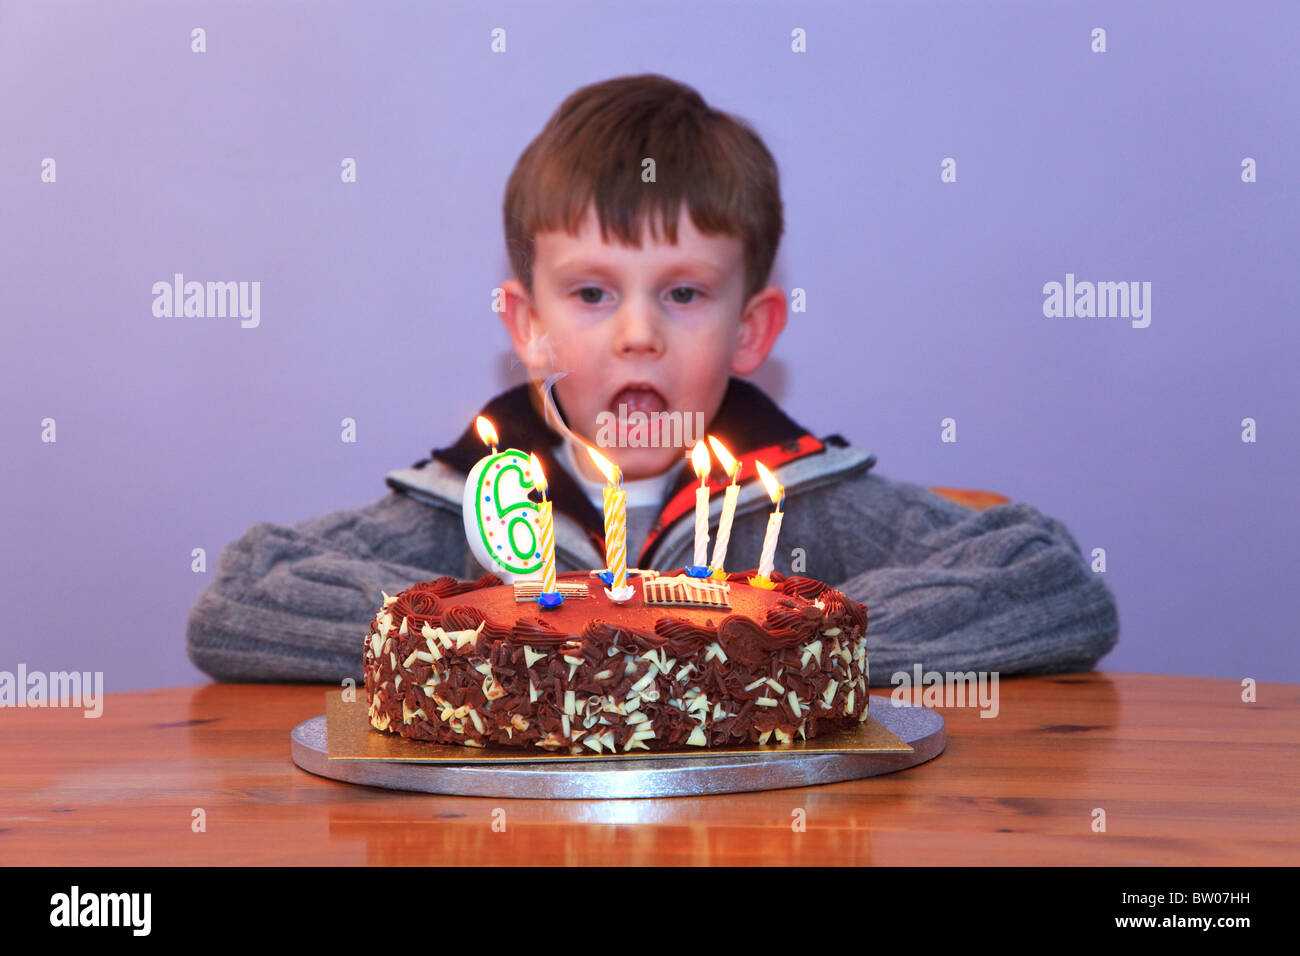 A 6 Year Old Boy Looking At The Candles On His Birthday Cake Stock Photo Alamy